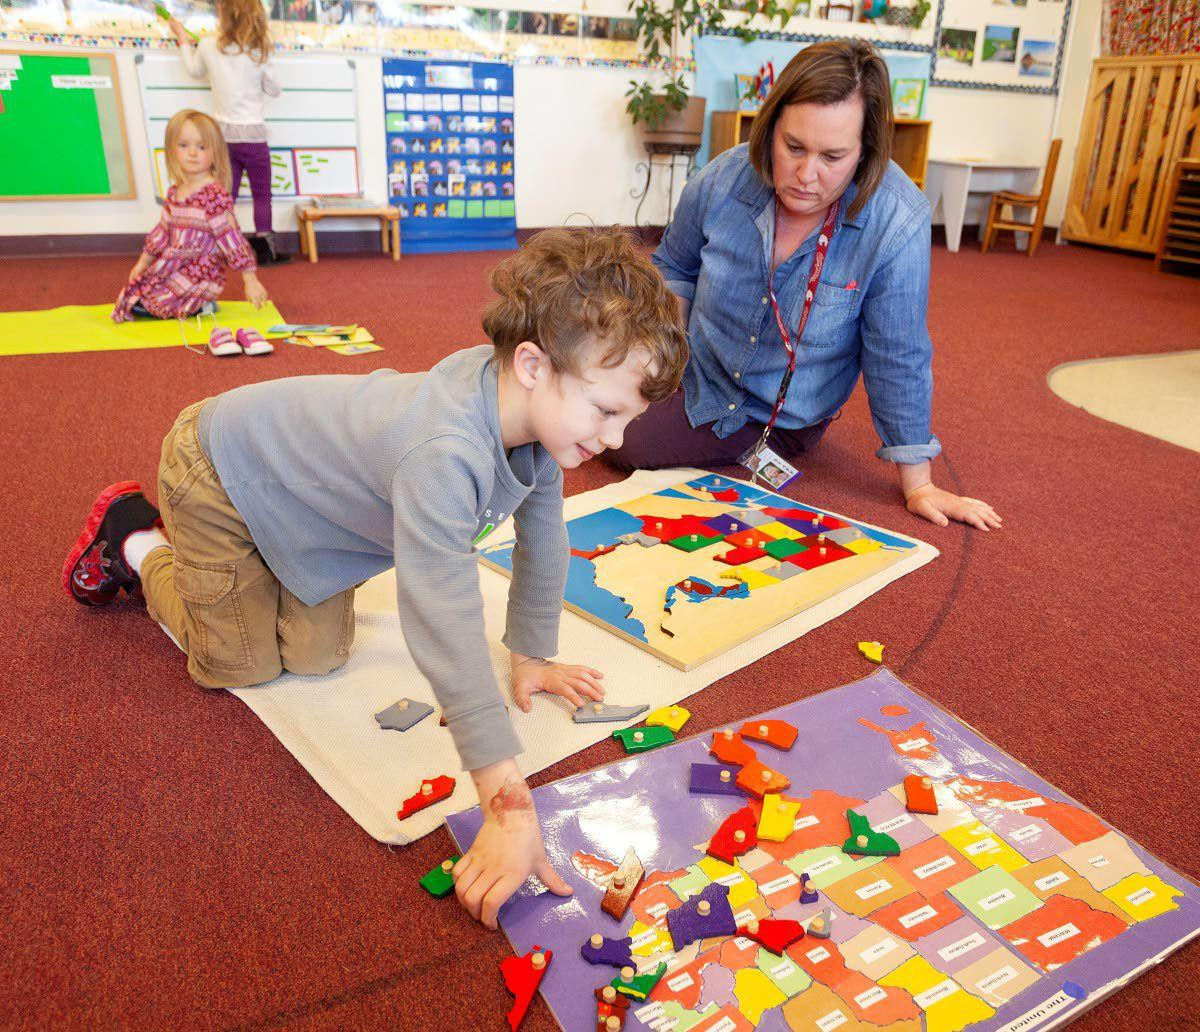 Montessori School says it will expand its offerings